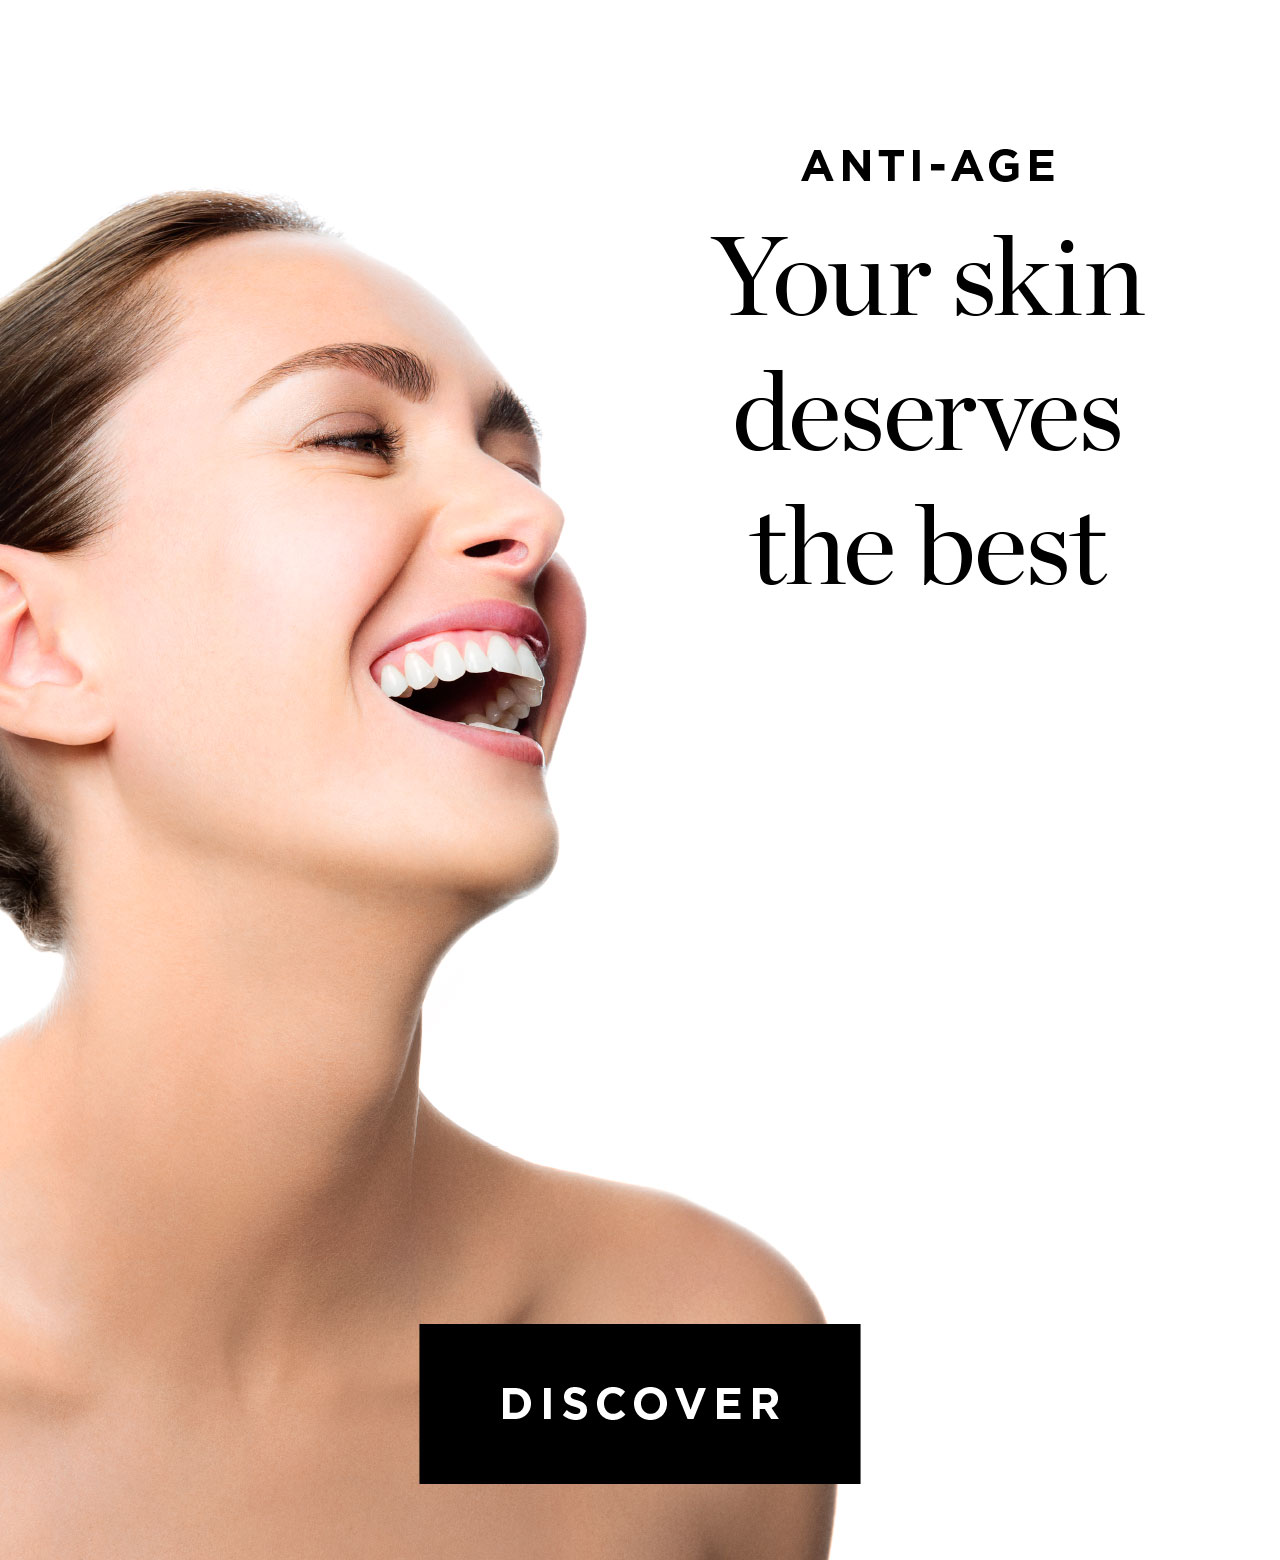 Your skin deserves the best